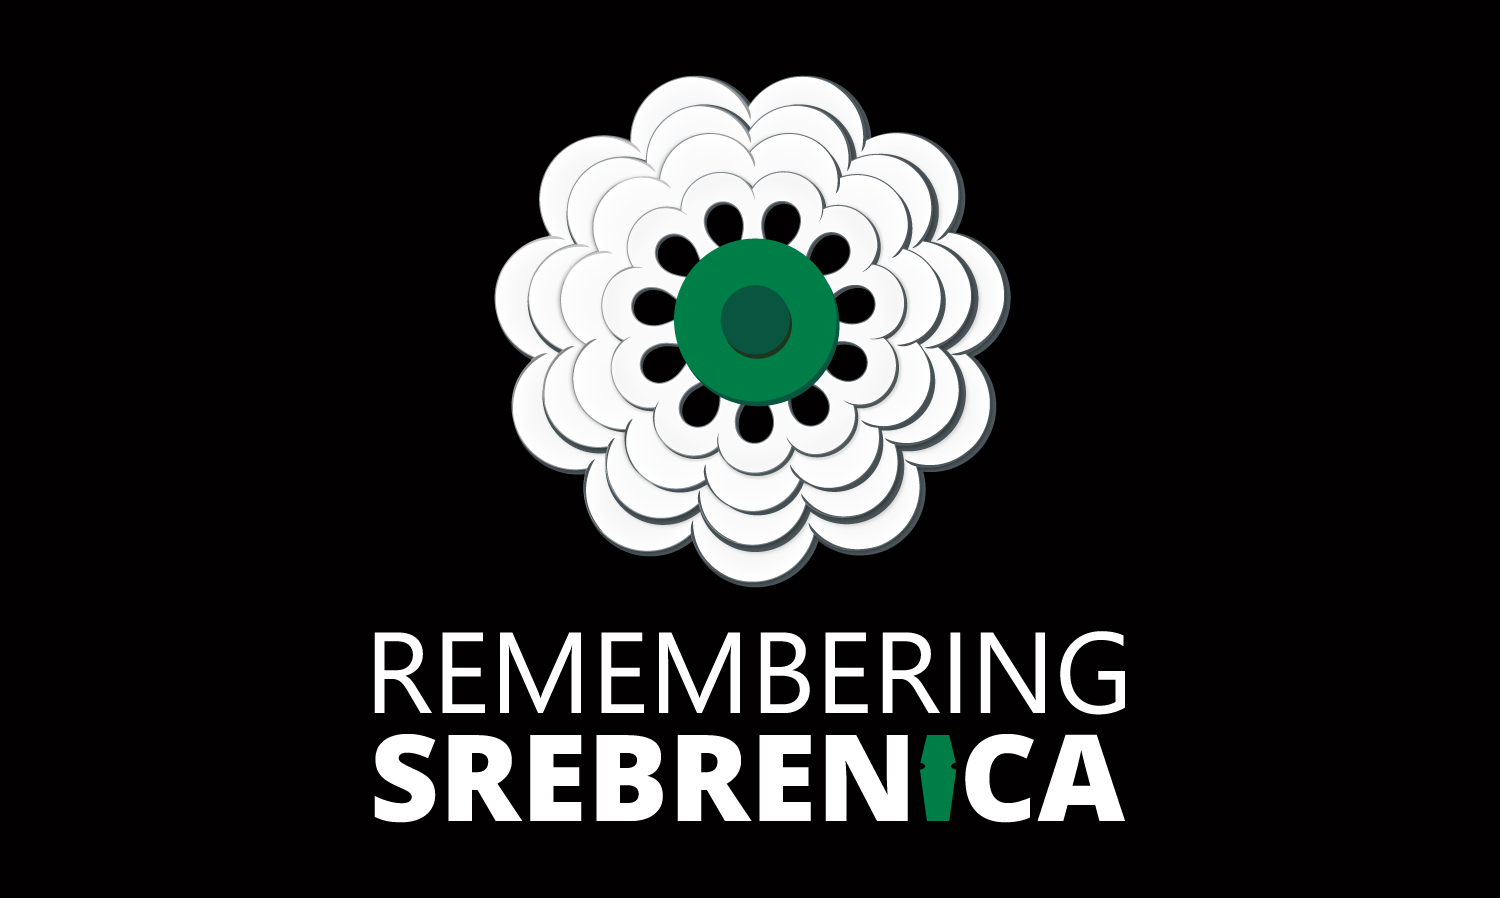 Remembering Srebrenica with a high quality flag.